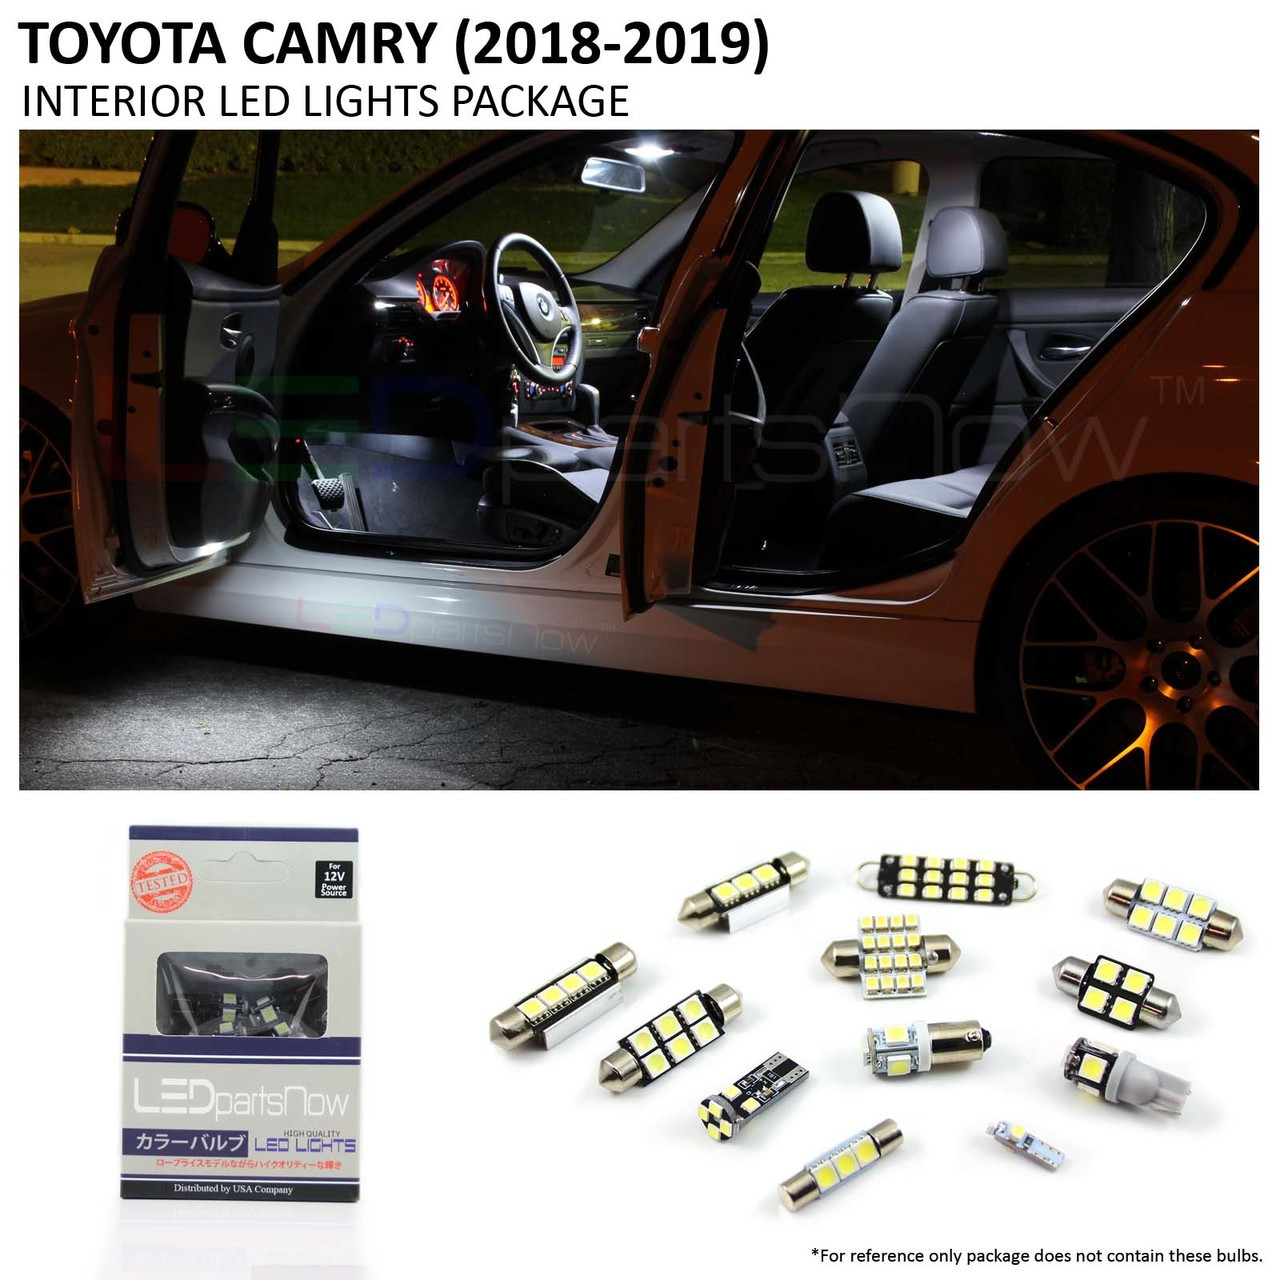 Toyota Camry 2018 Interior >> 2018 Toyota Camry Led Interior Lights Package